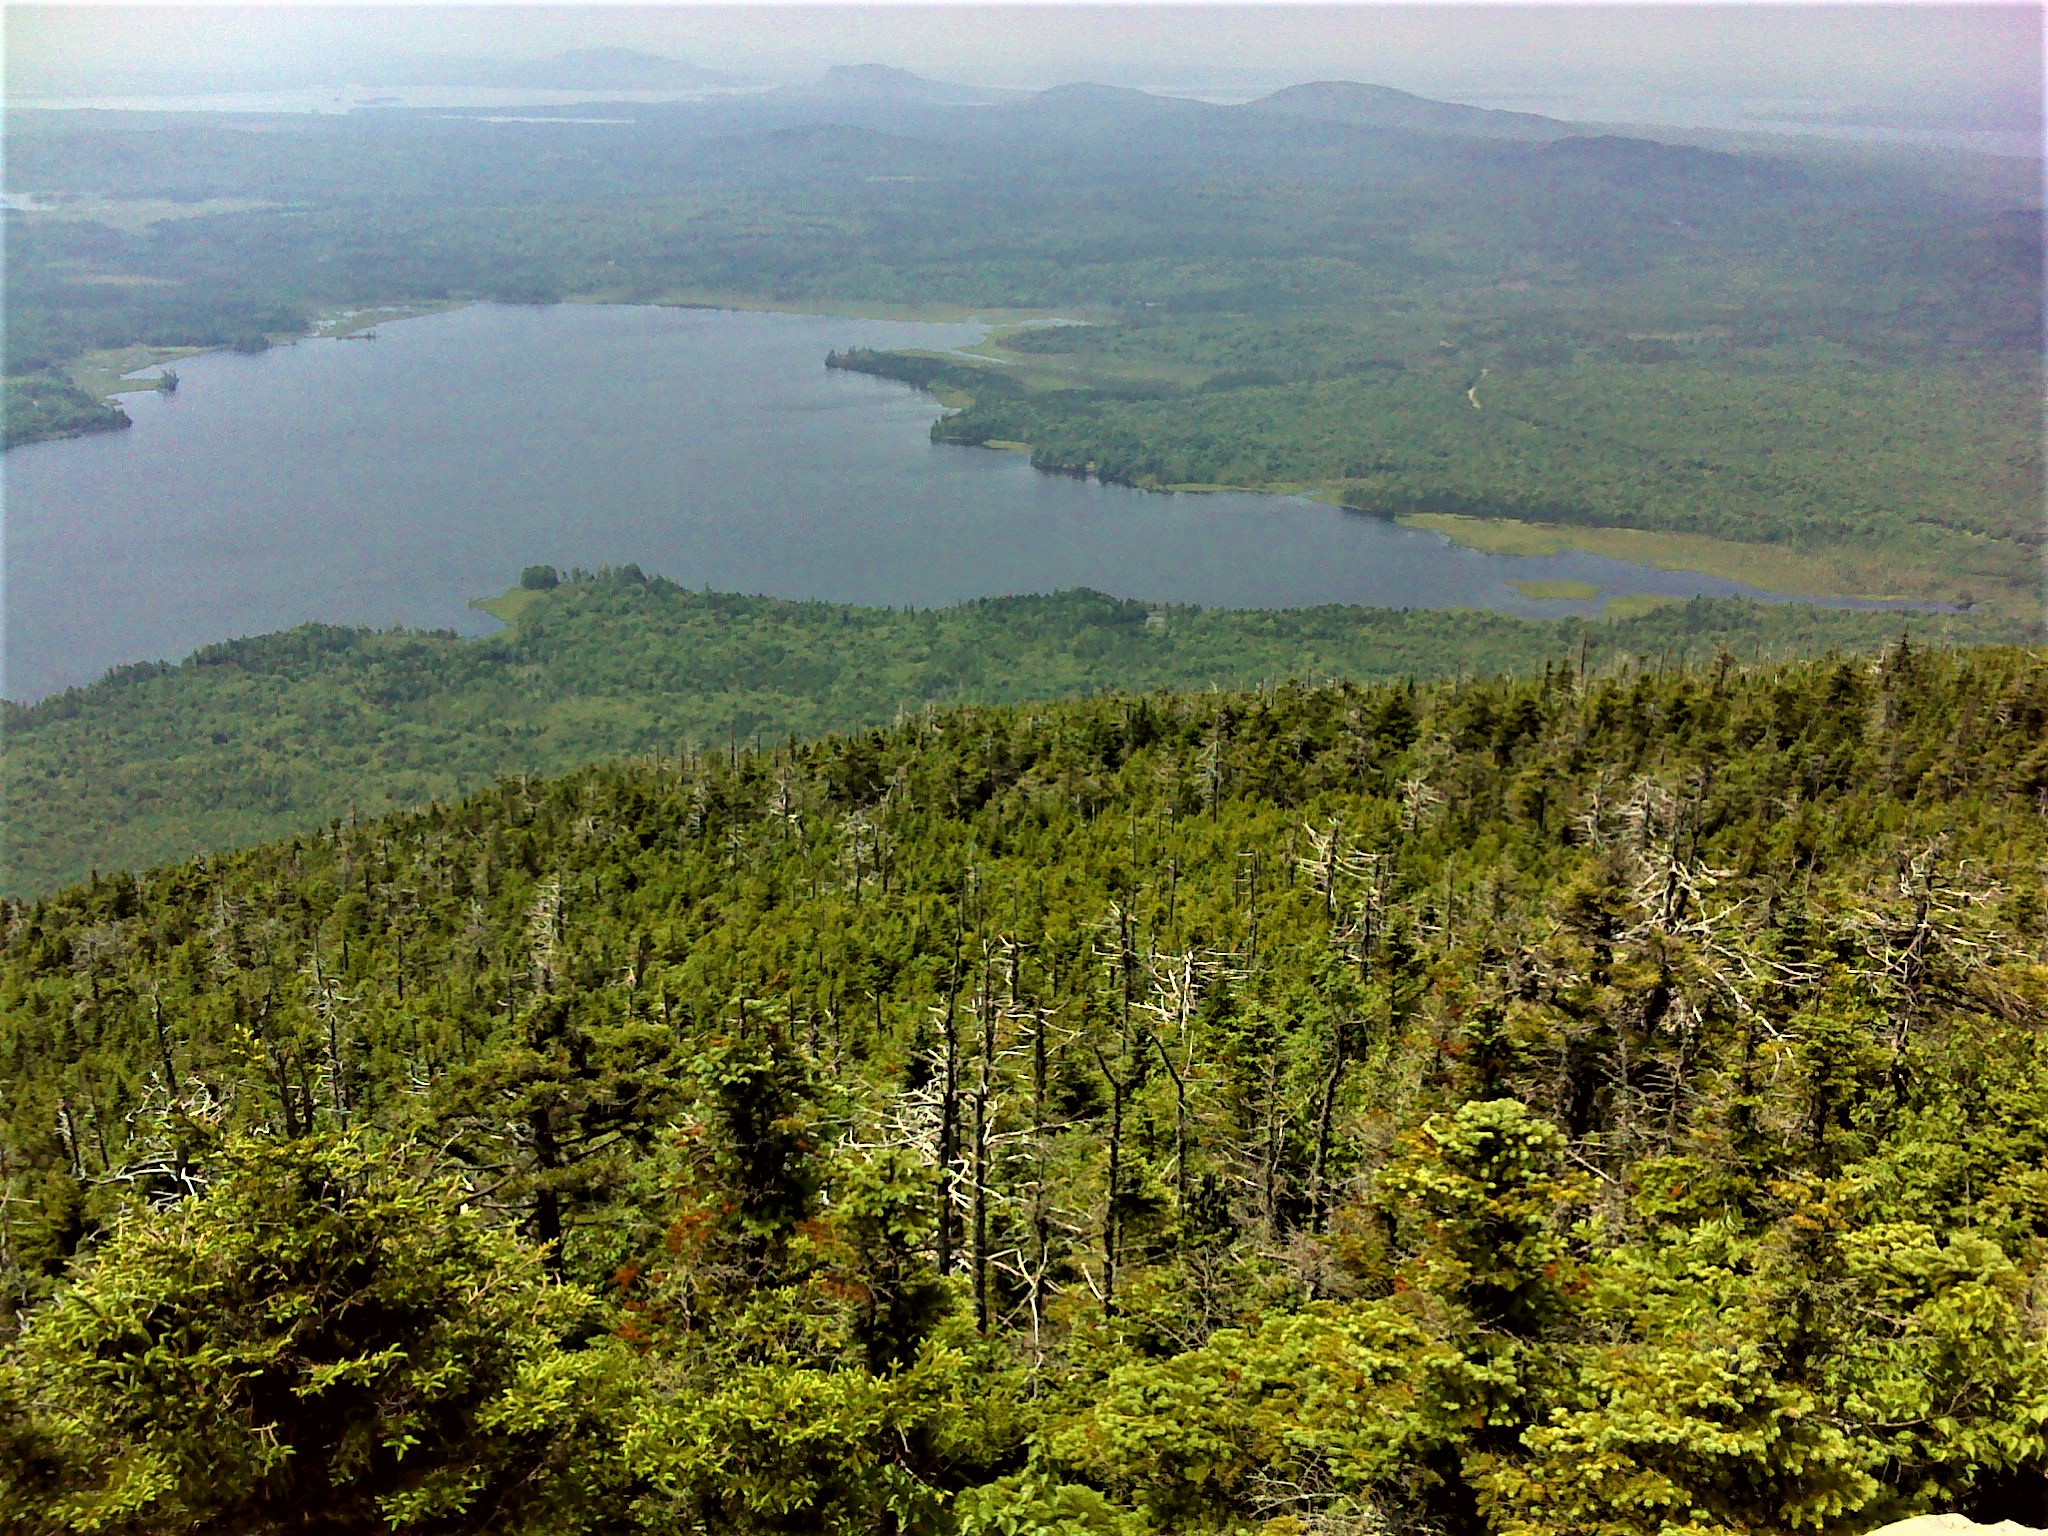 Looking west from the summit. The view is across Spencer Pond to Moosehead Lake. Notice Mount Kineo in the center on the horizon.